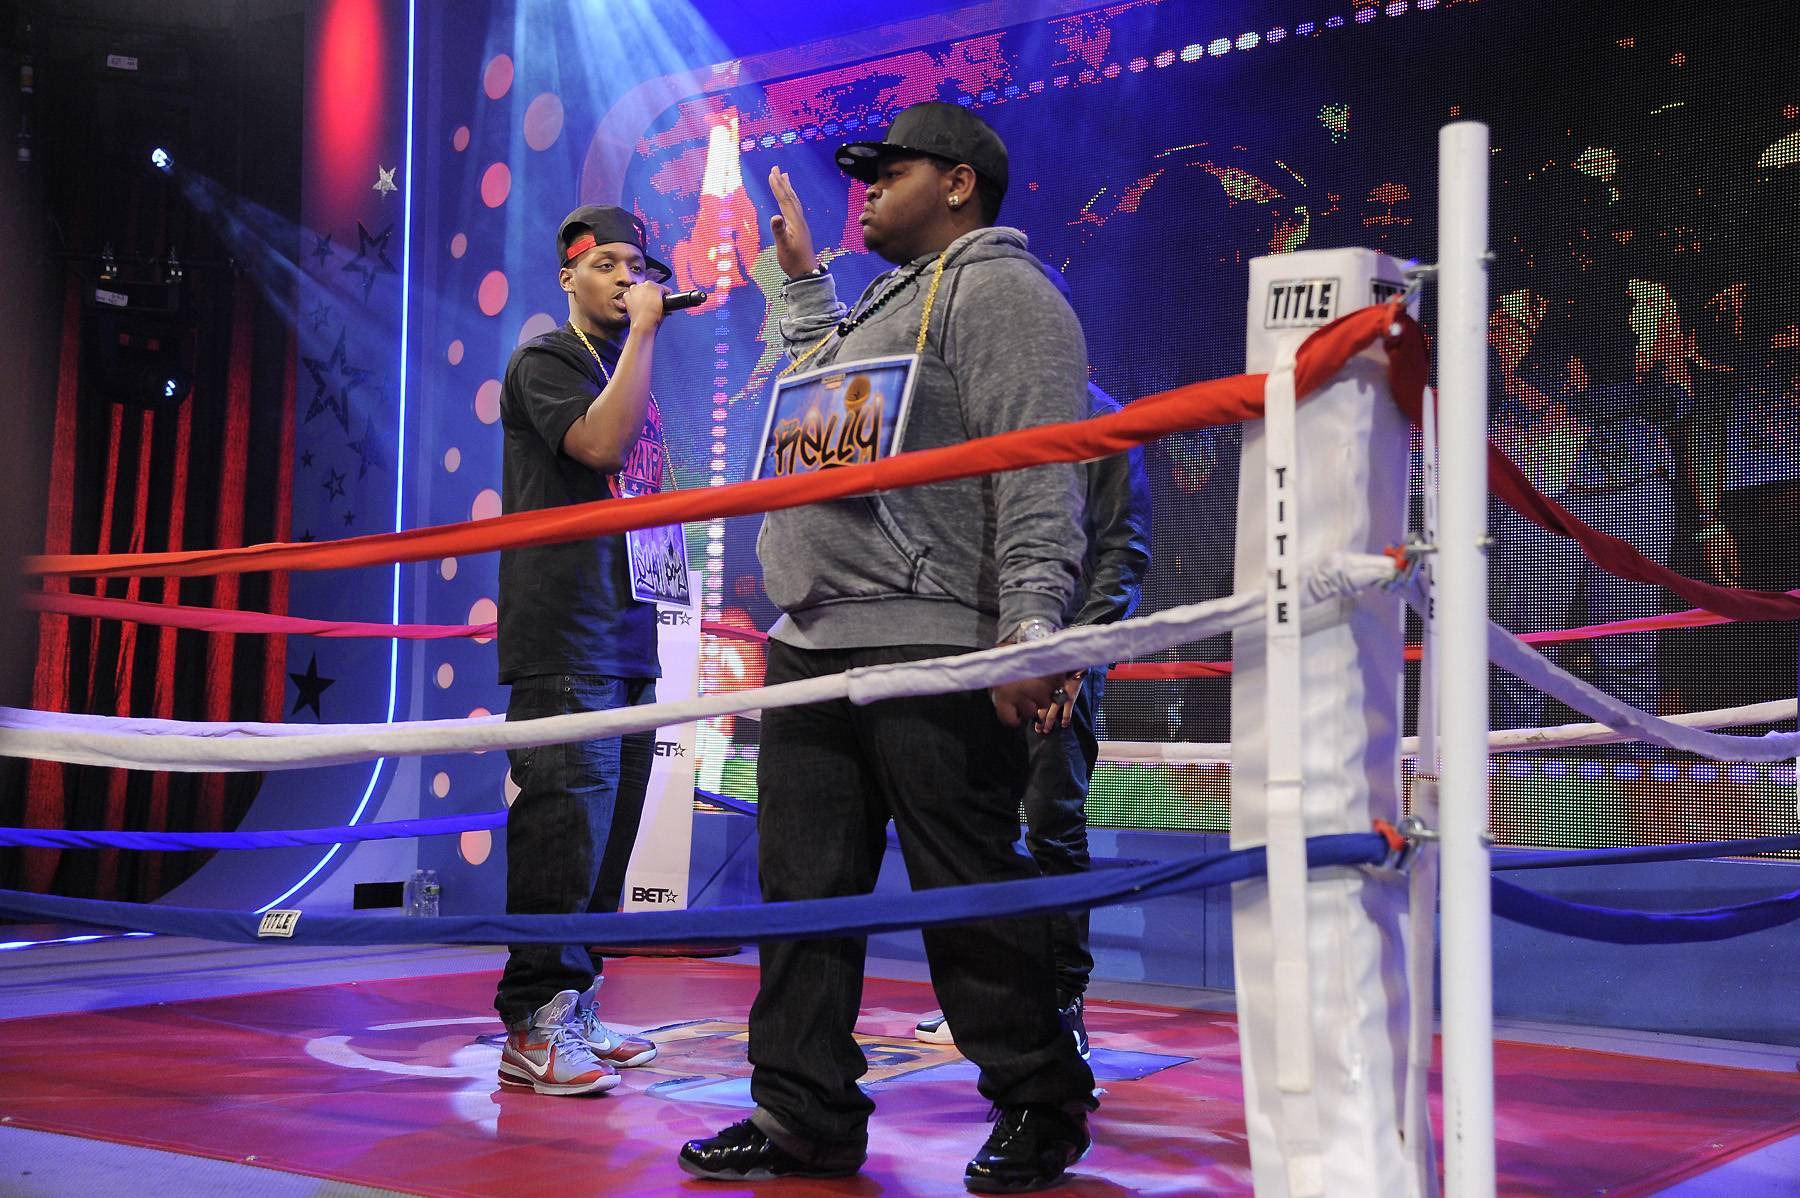 Can't Get Enough - Freestyle Friday contestants Syahboy and Relly at 106 & Park, April 6, 2012. (photo: John Ricard / BET)